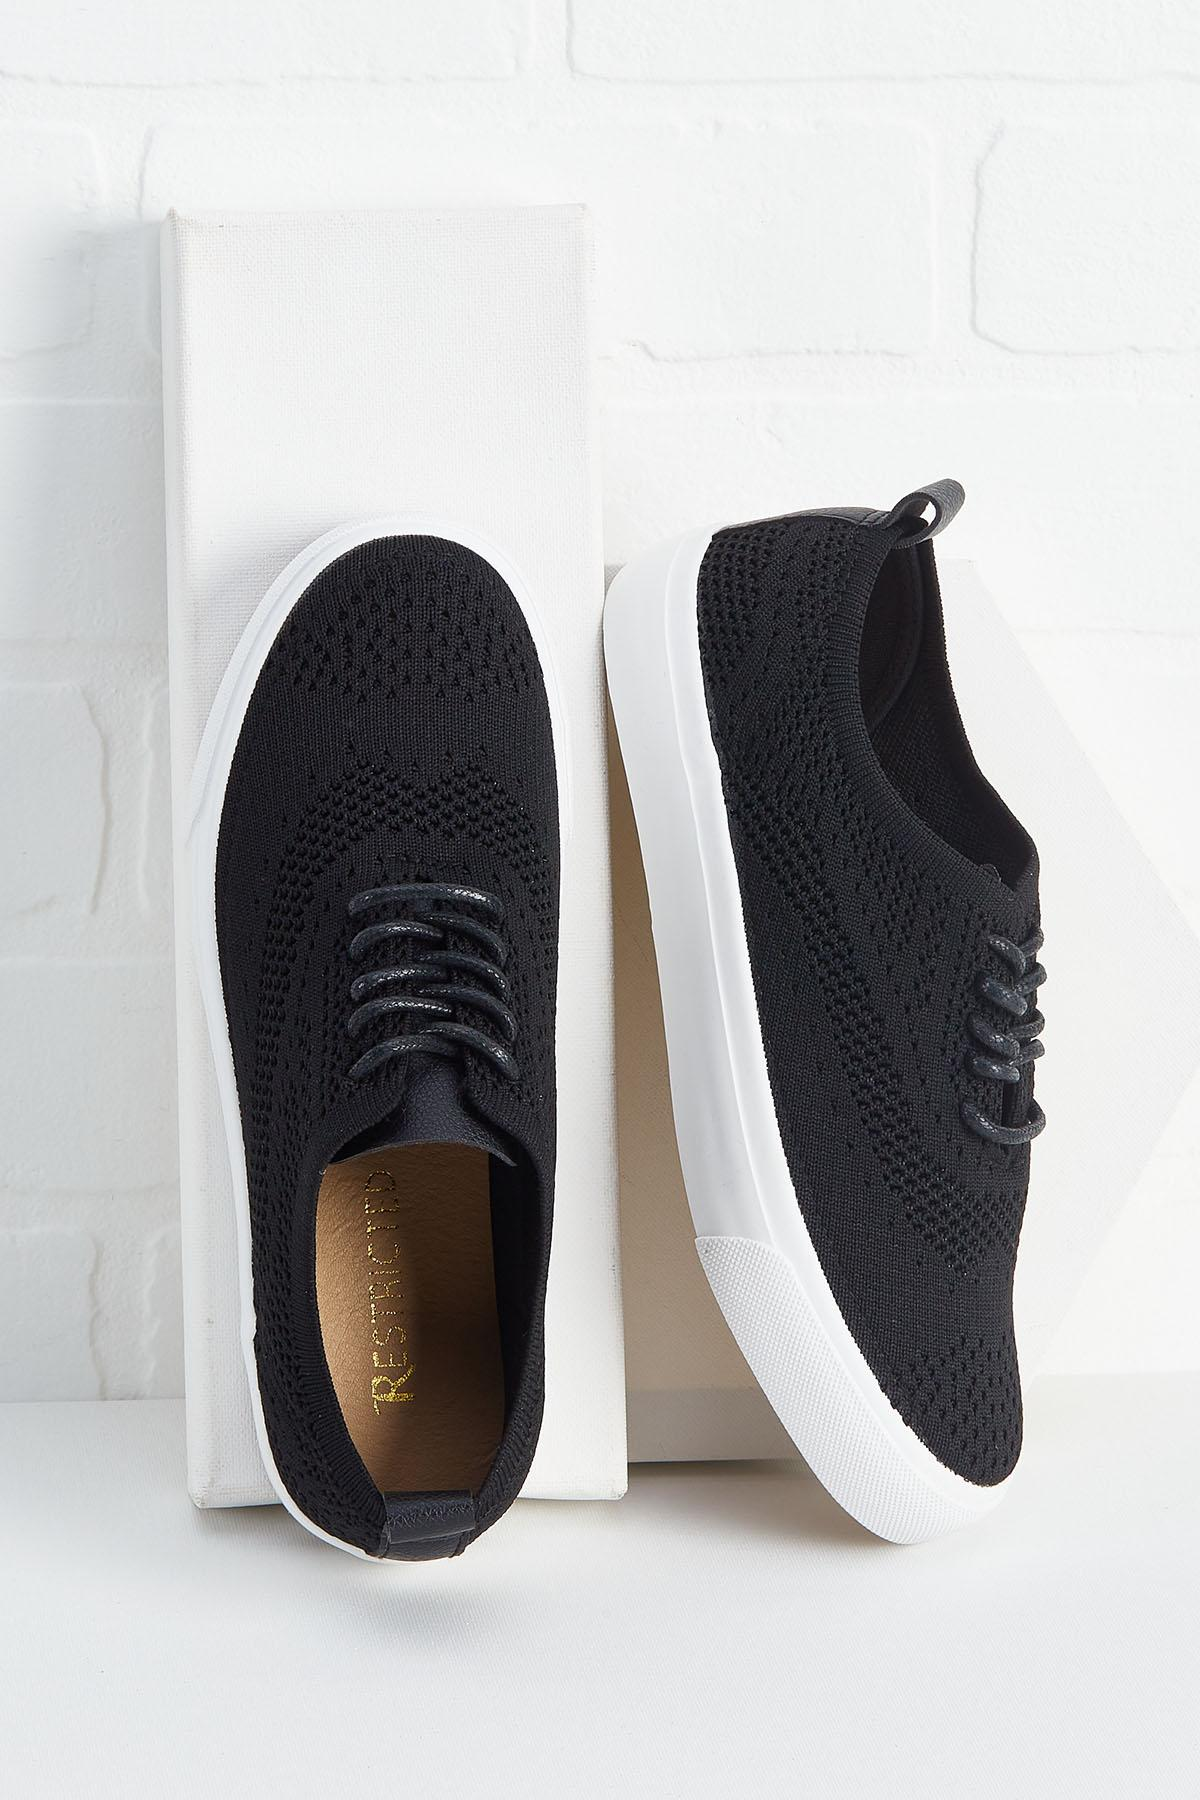 How I Like Knit Sneakers